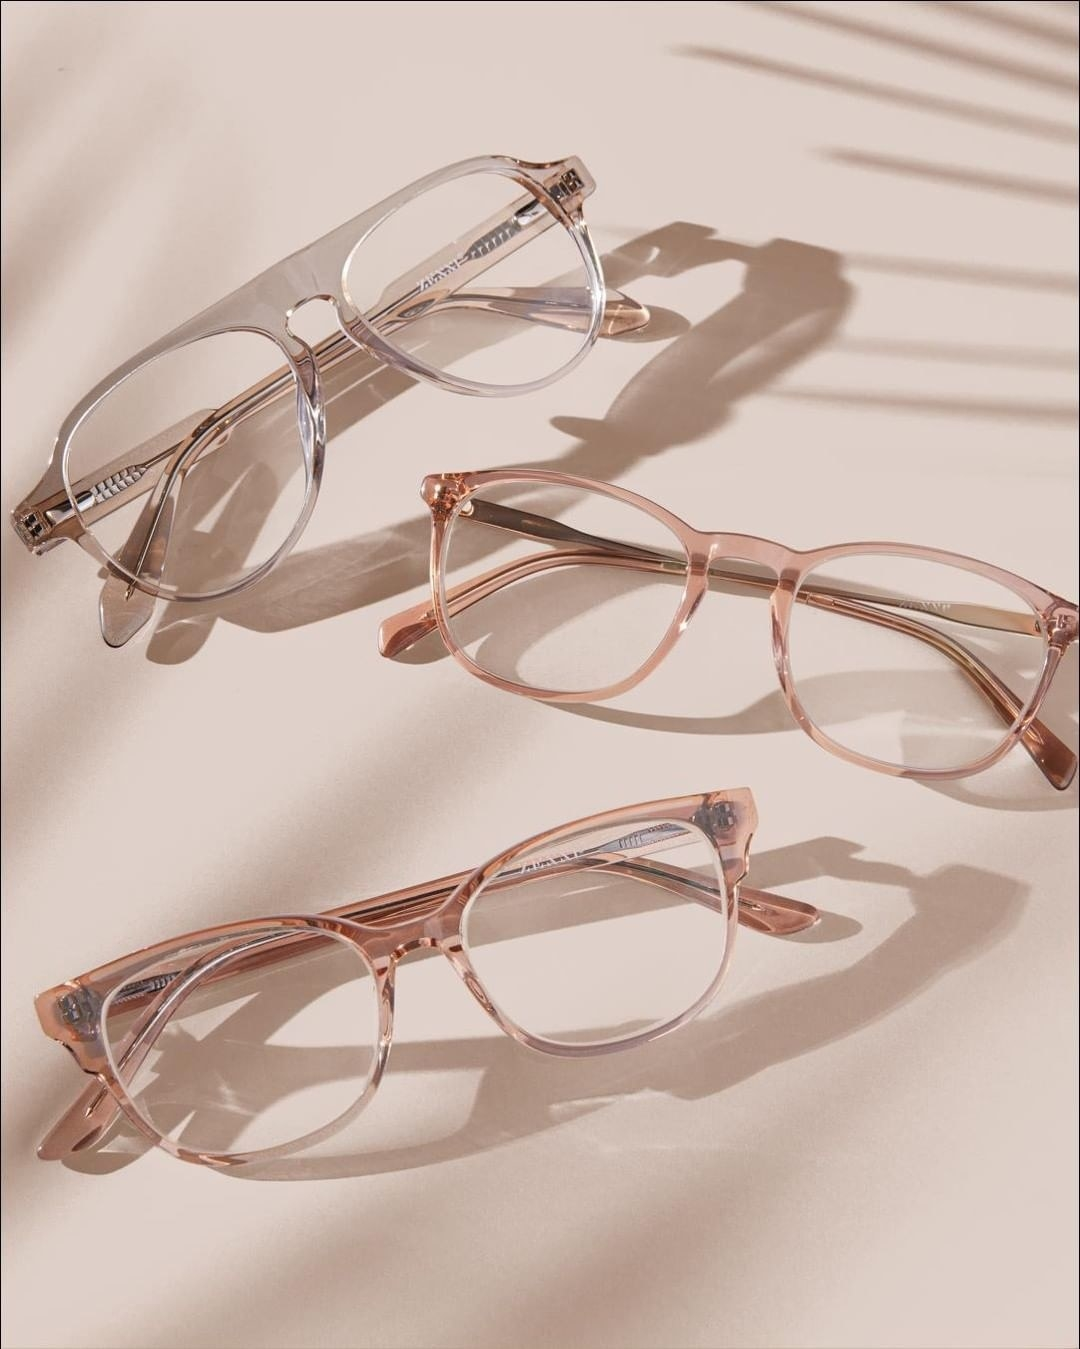 Three pairs of Zenni eyeglasses in a clearish, pink frame and different styles